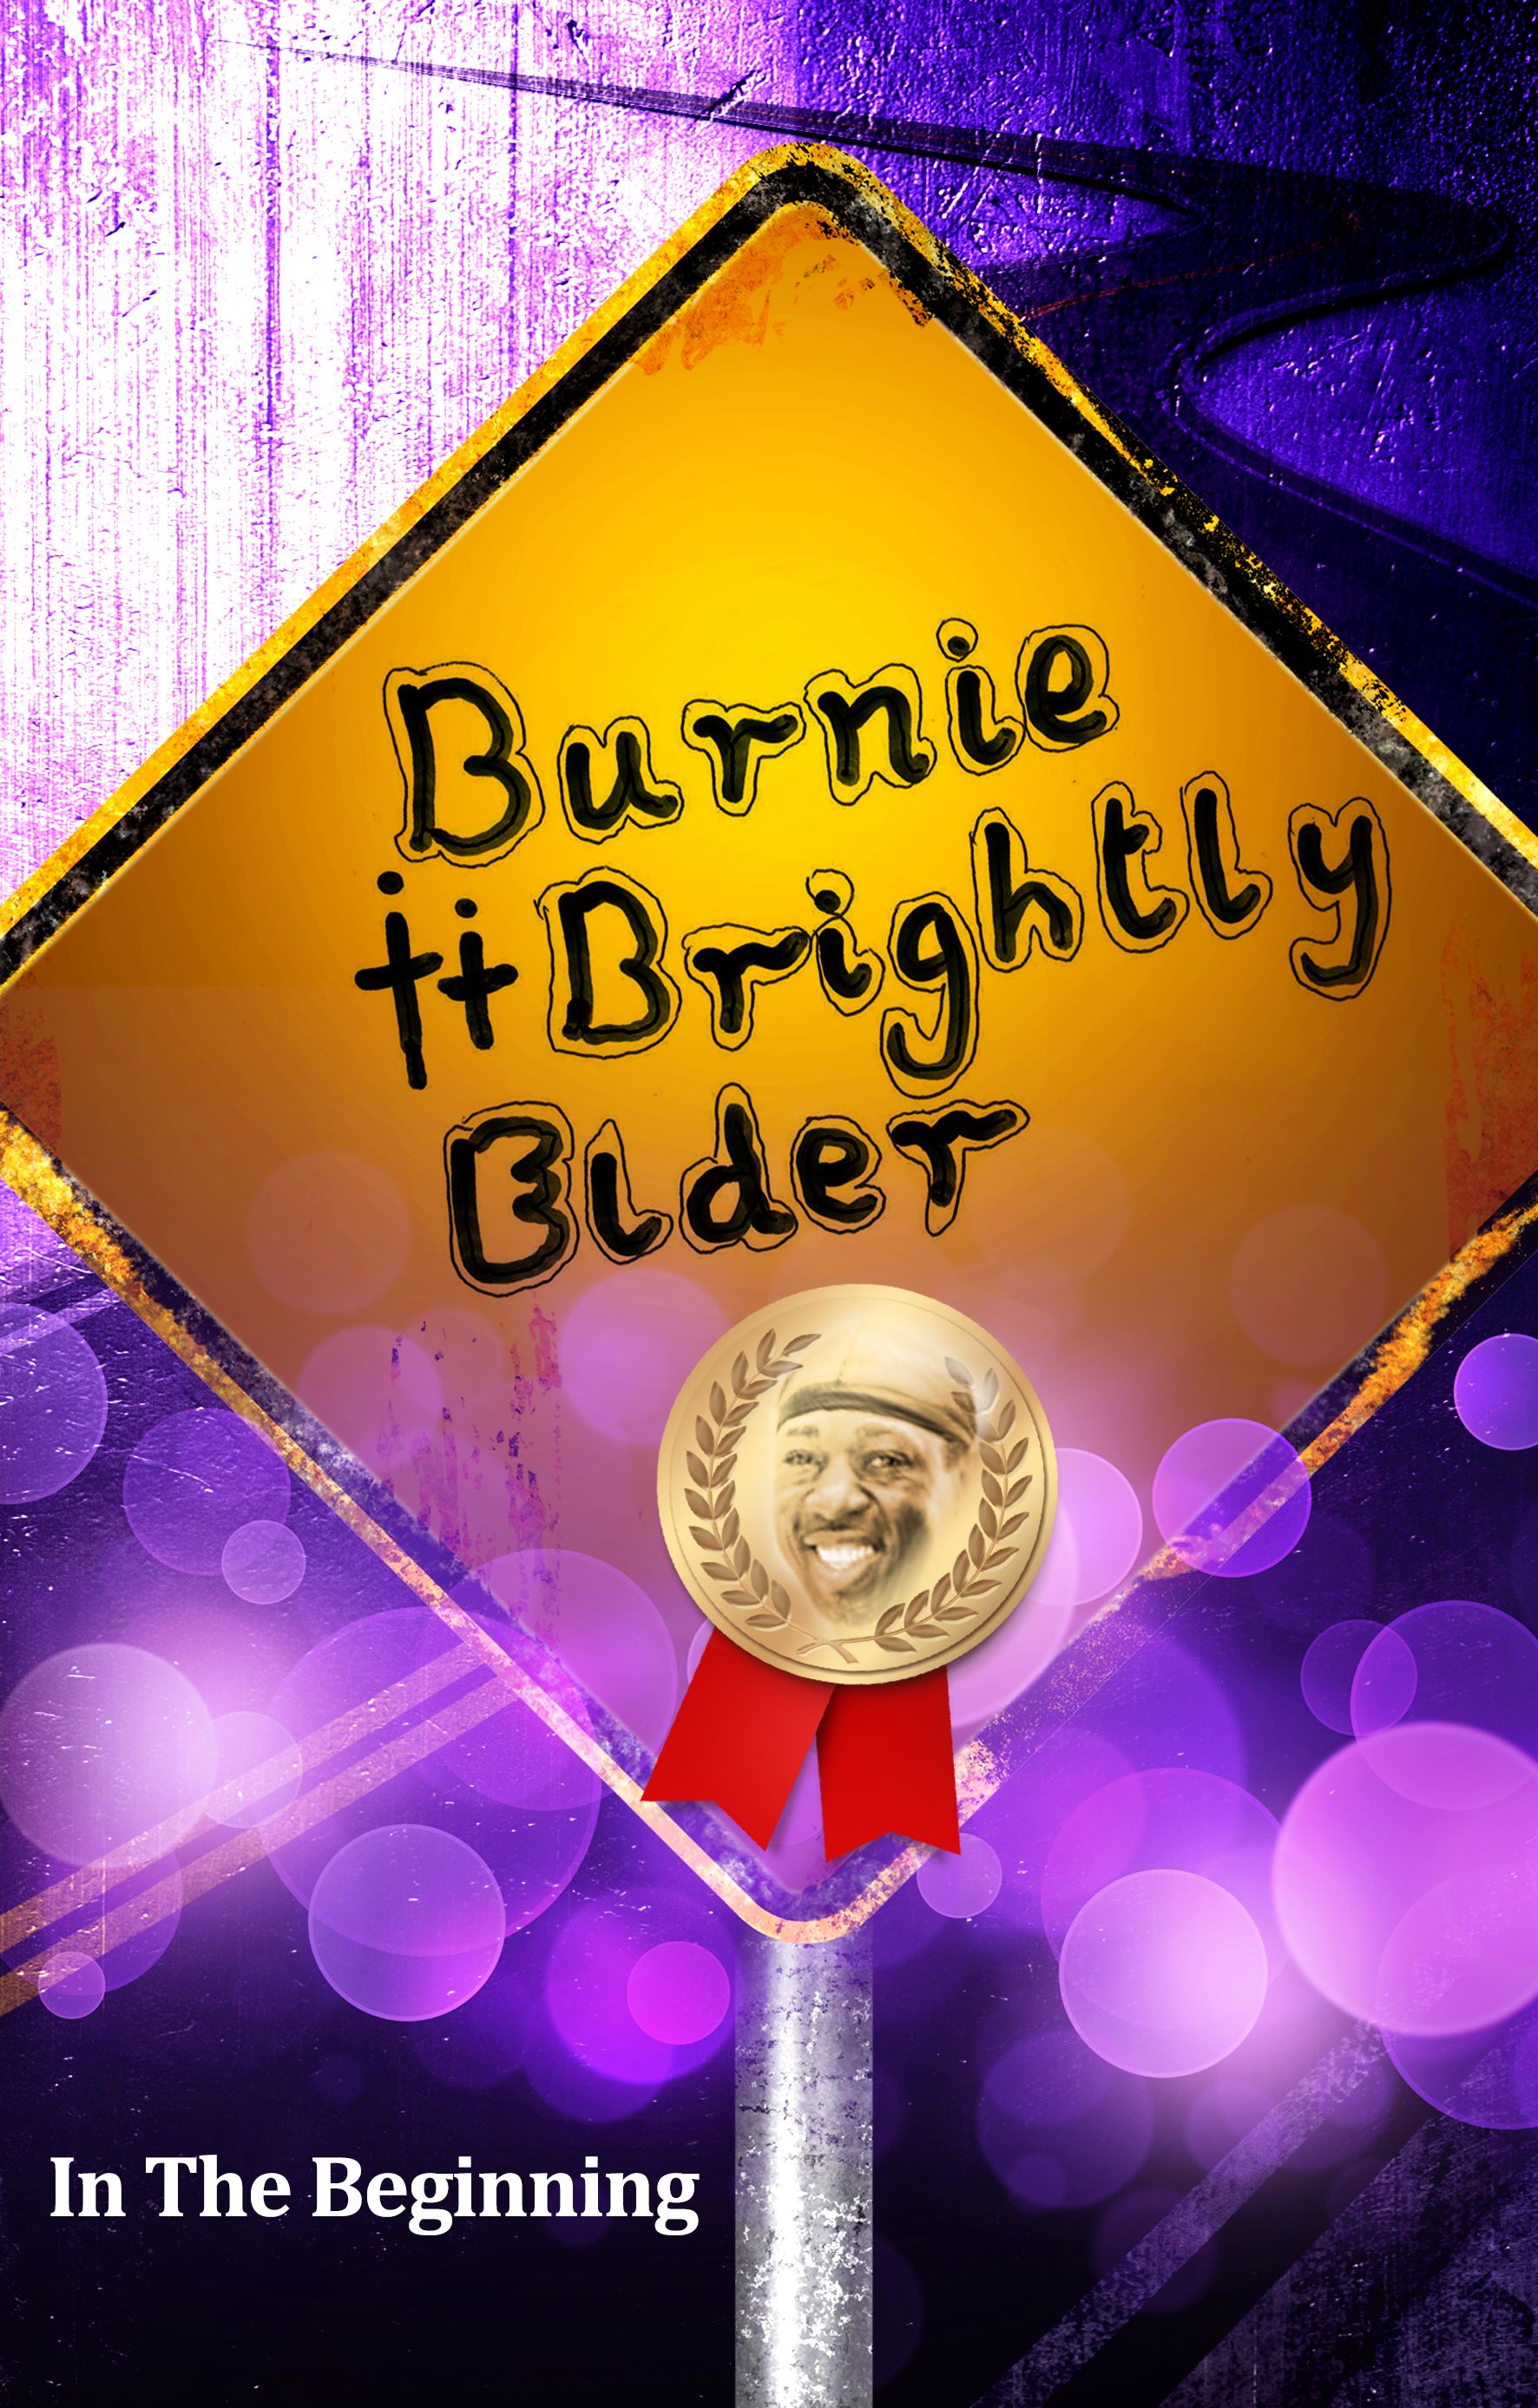 Burnie Brightly's cover